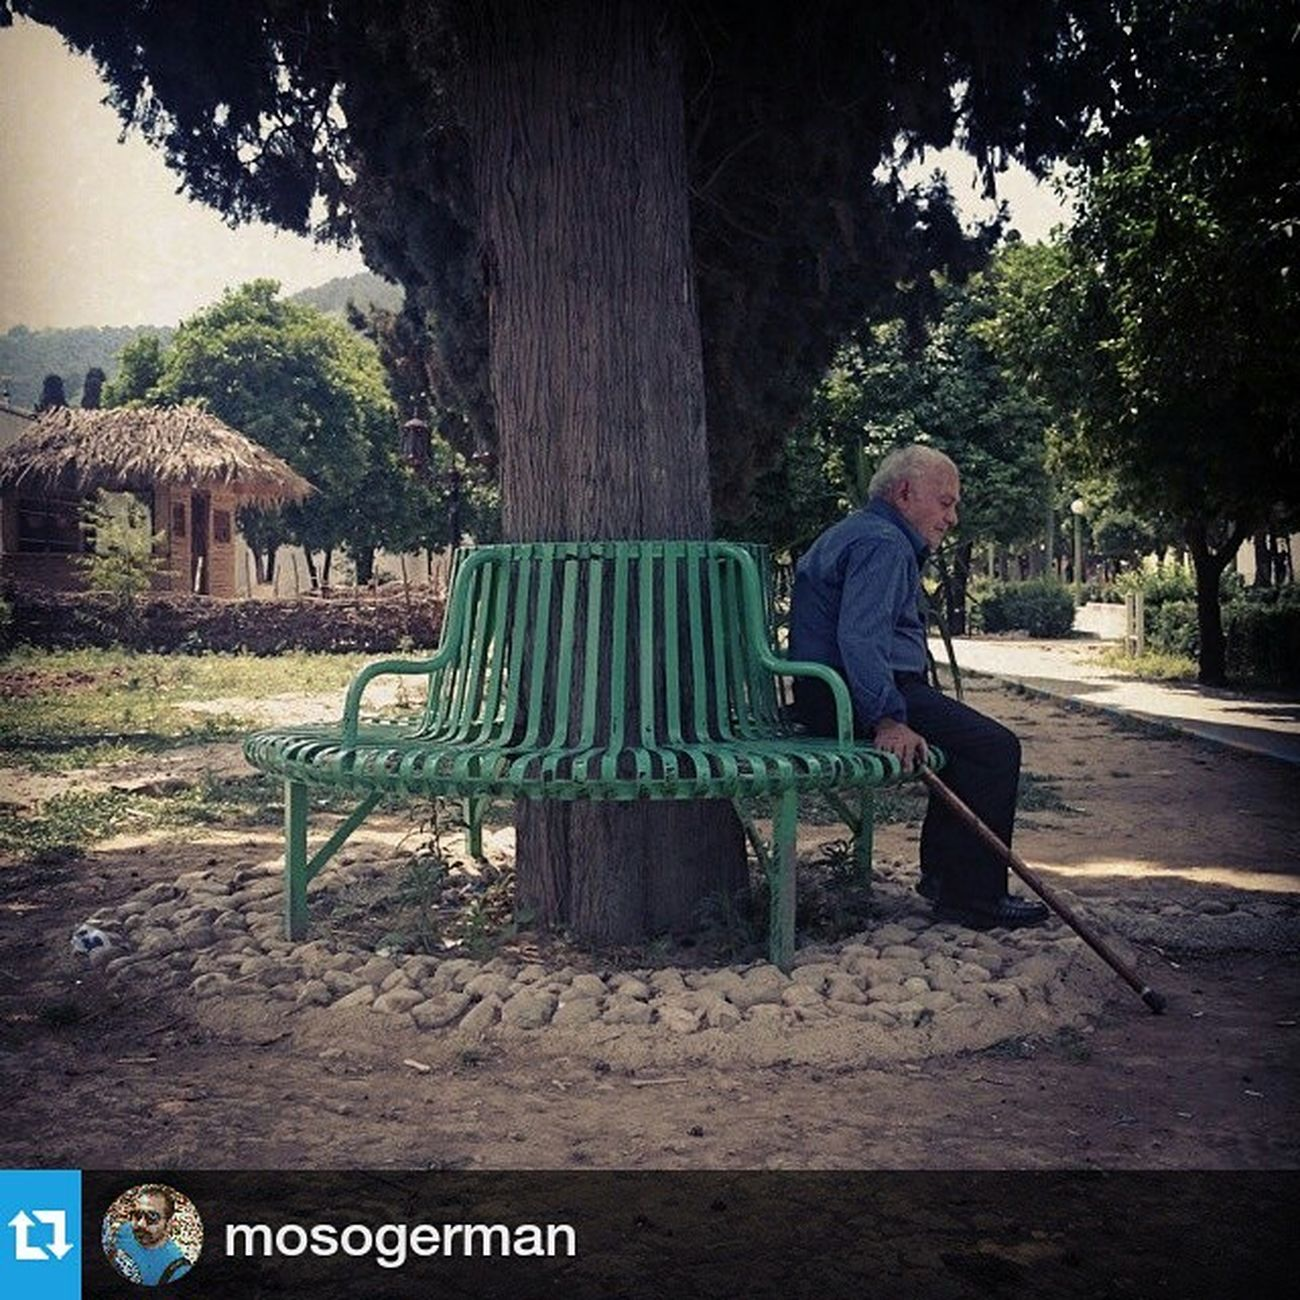 Repost ・・・ Everydayeverywhere Everywheredaily Everydayasia everydaymazandaran daily dailylife picoftheday photooftheday reportagespotlight gettyimagesnews gettyreportage park lonely old_man old man mobilephotography mobilegraphy